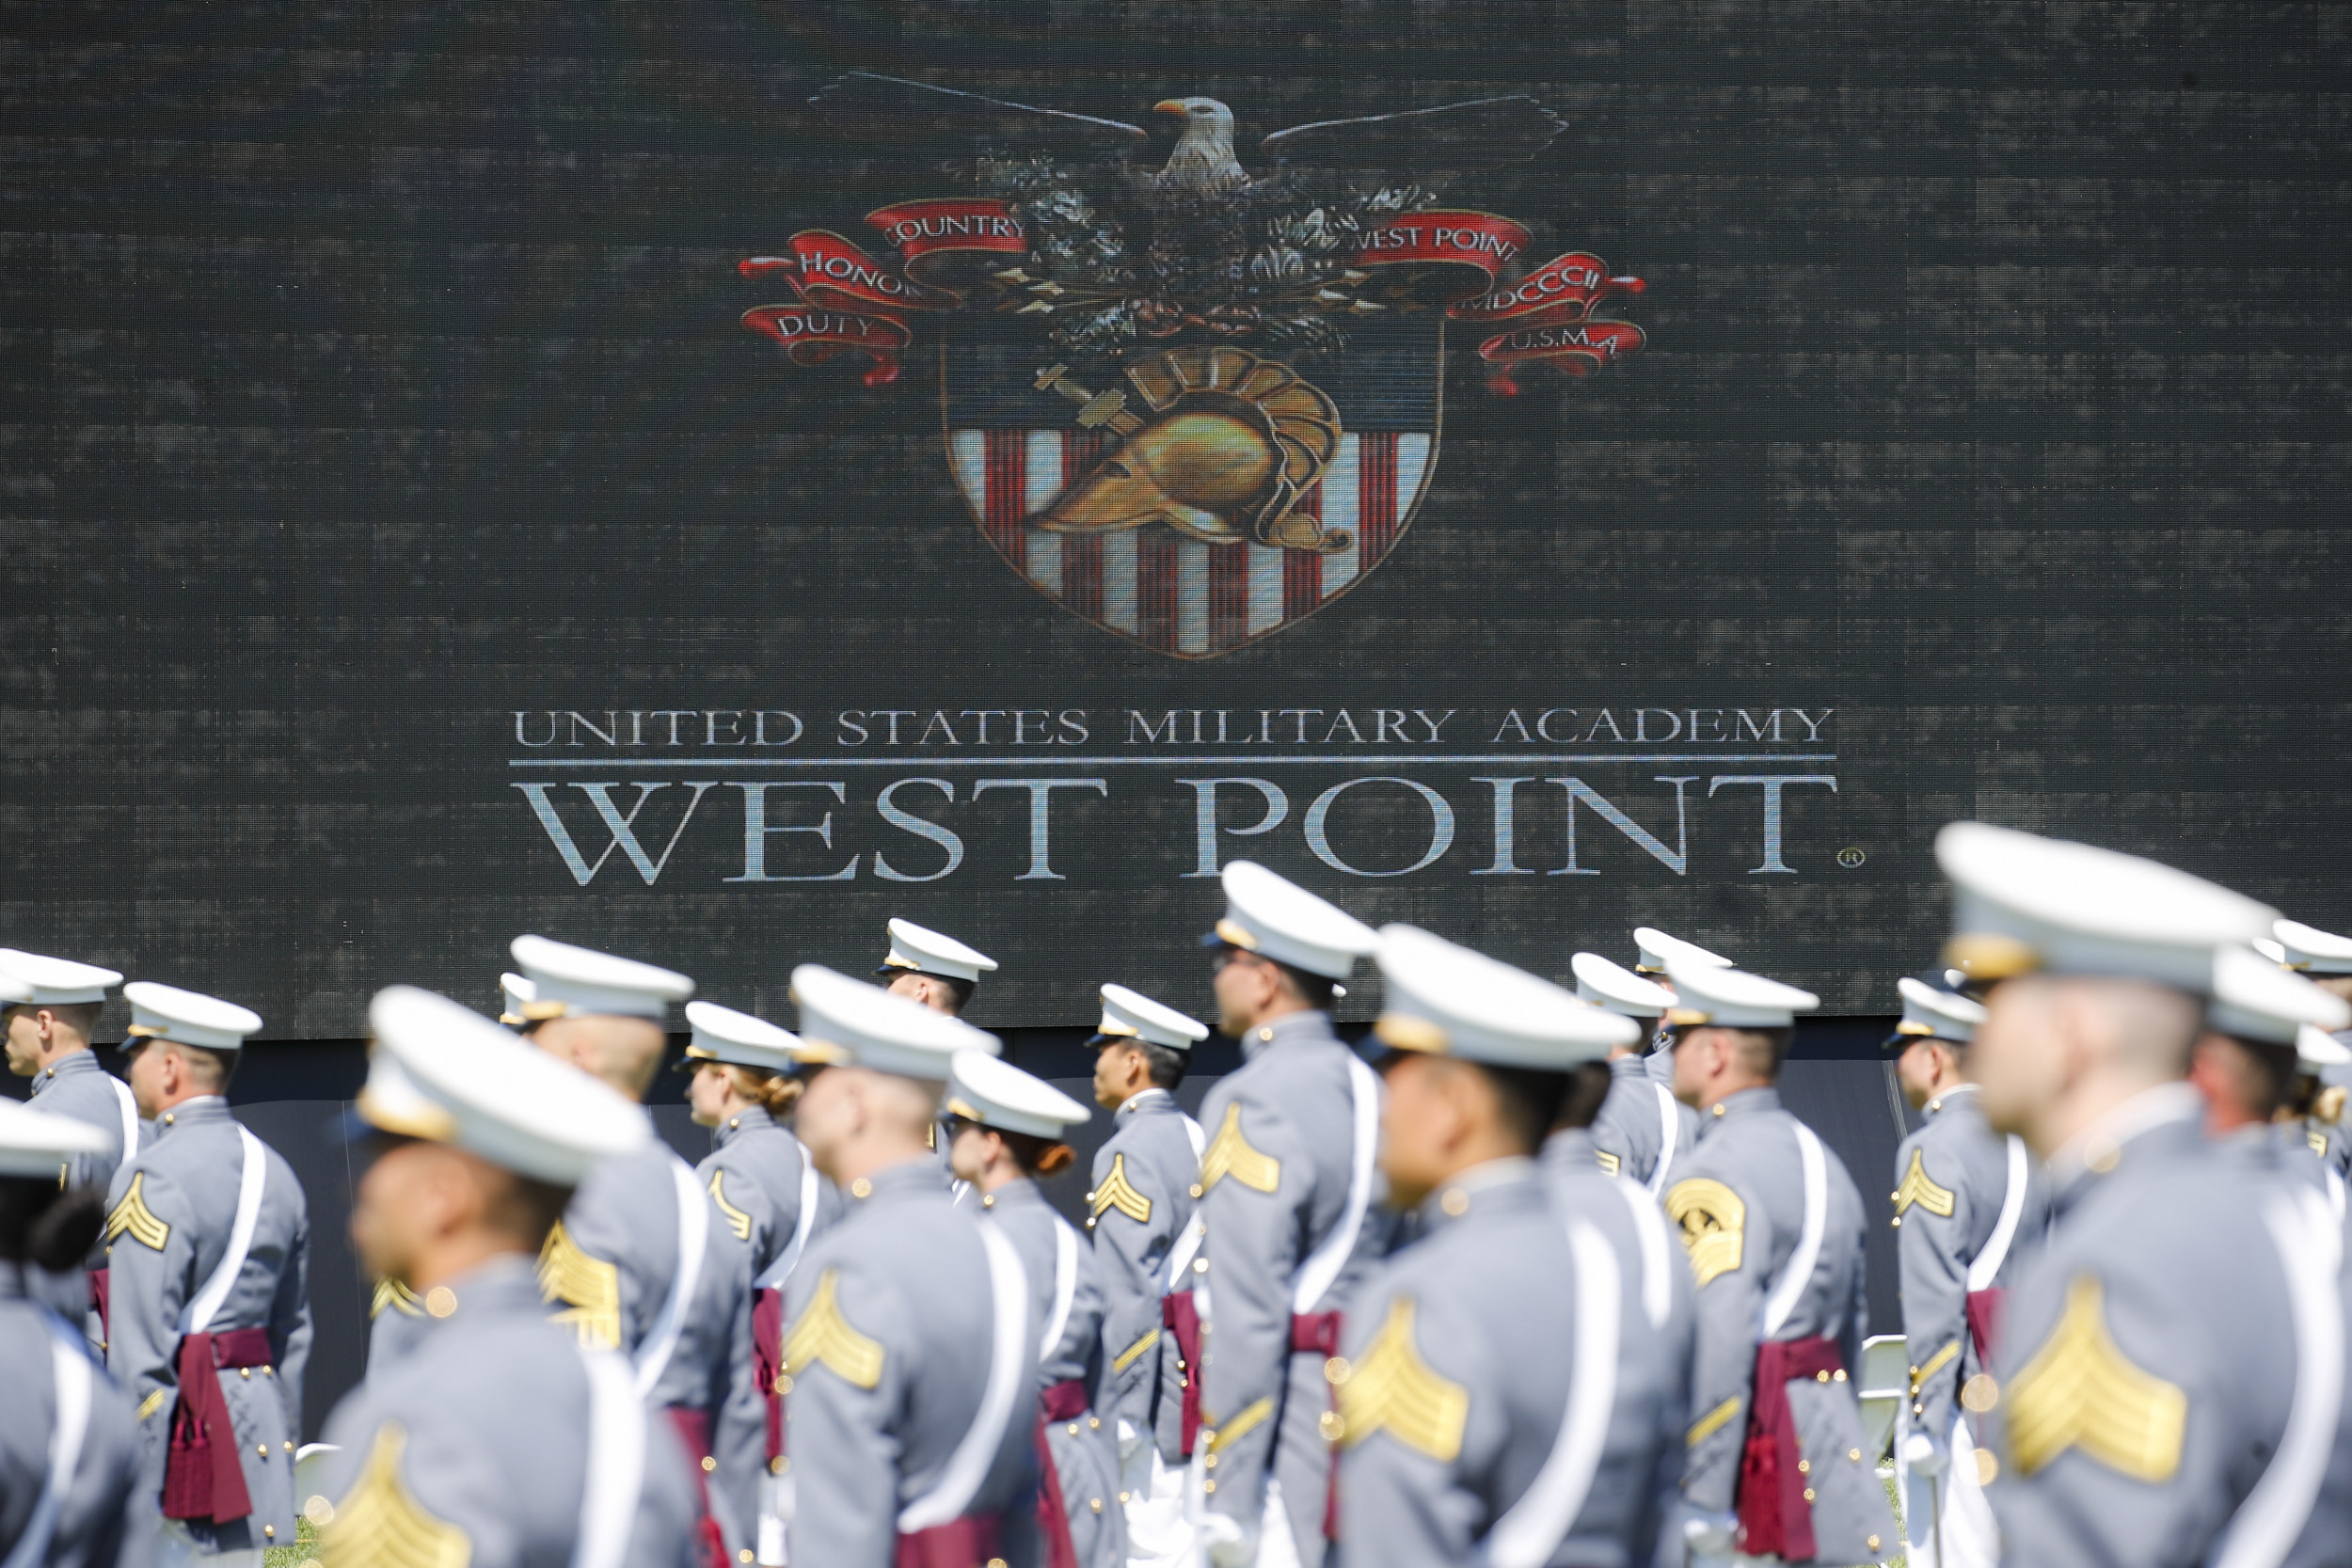 West Point Academy to investigate allegations of racism after alumni letter